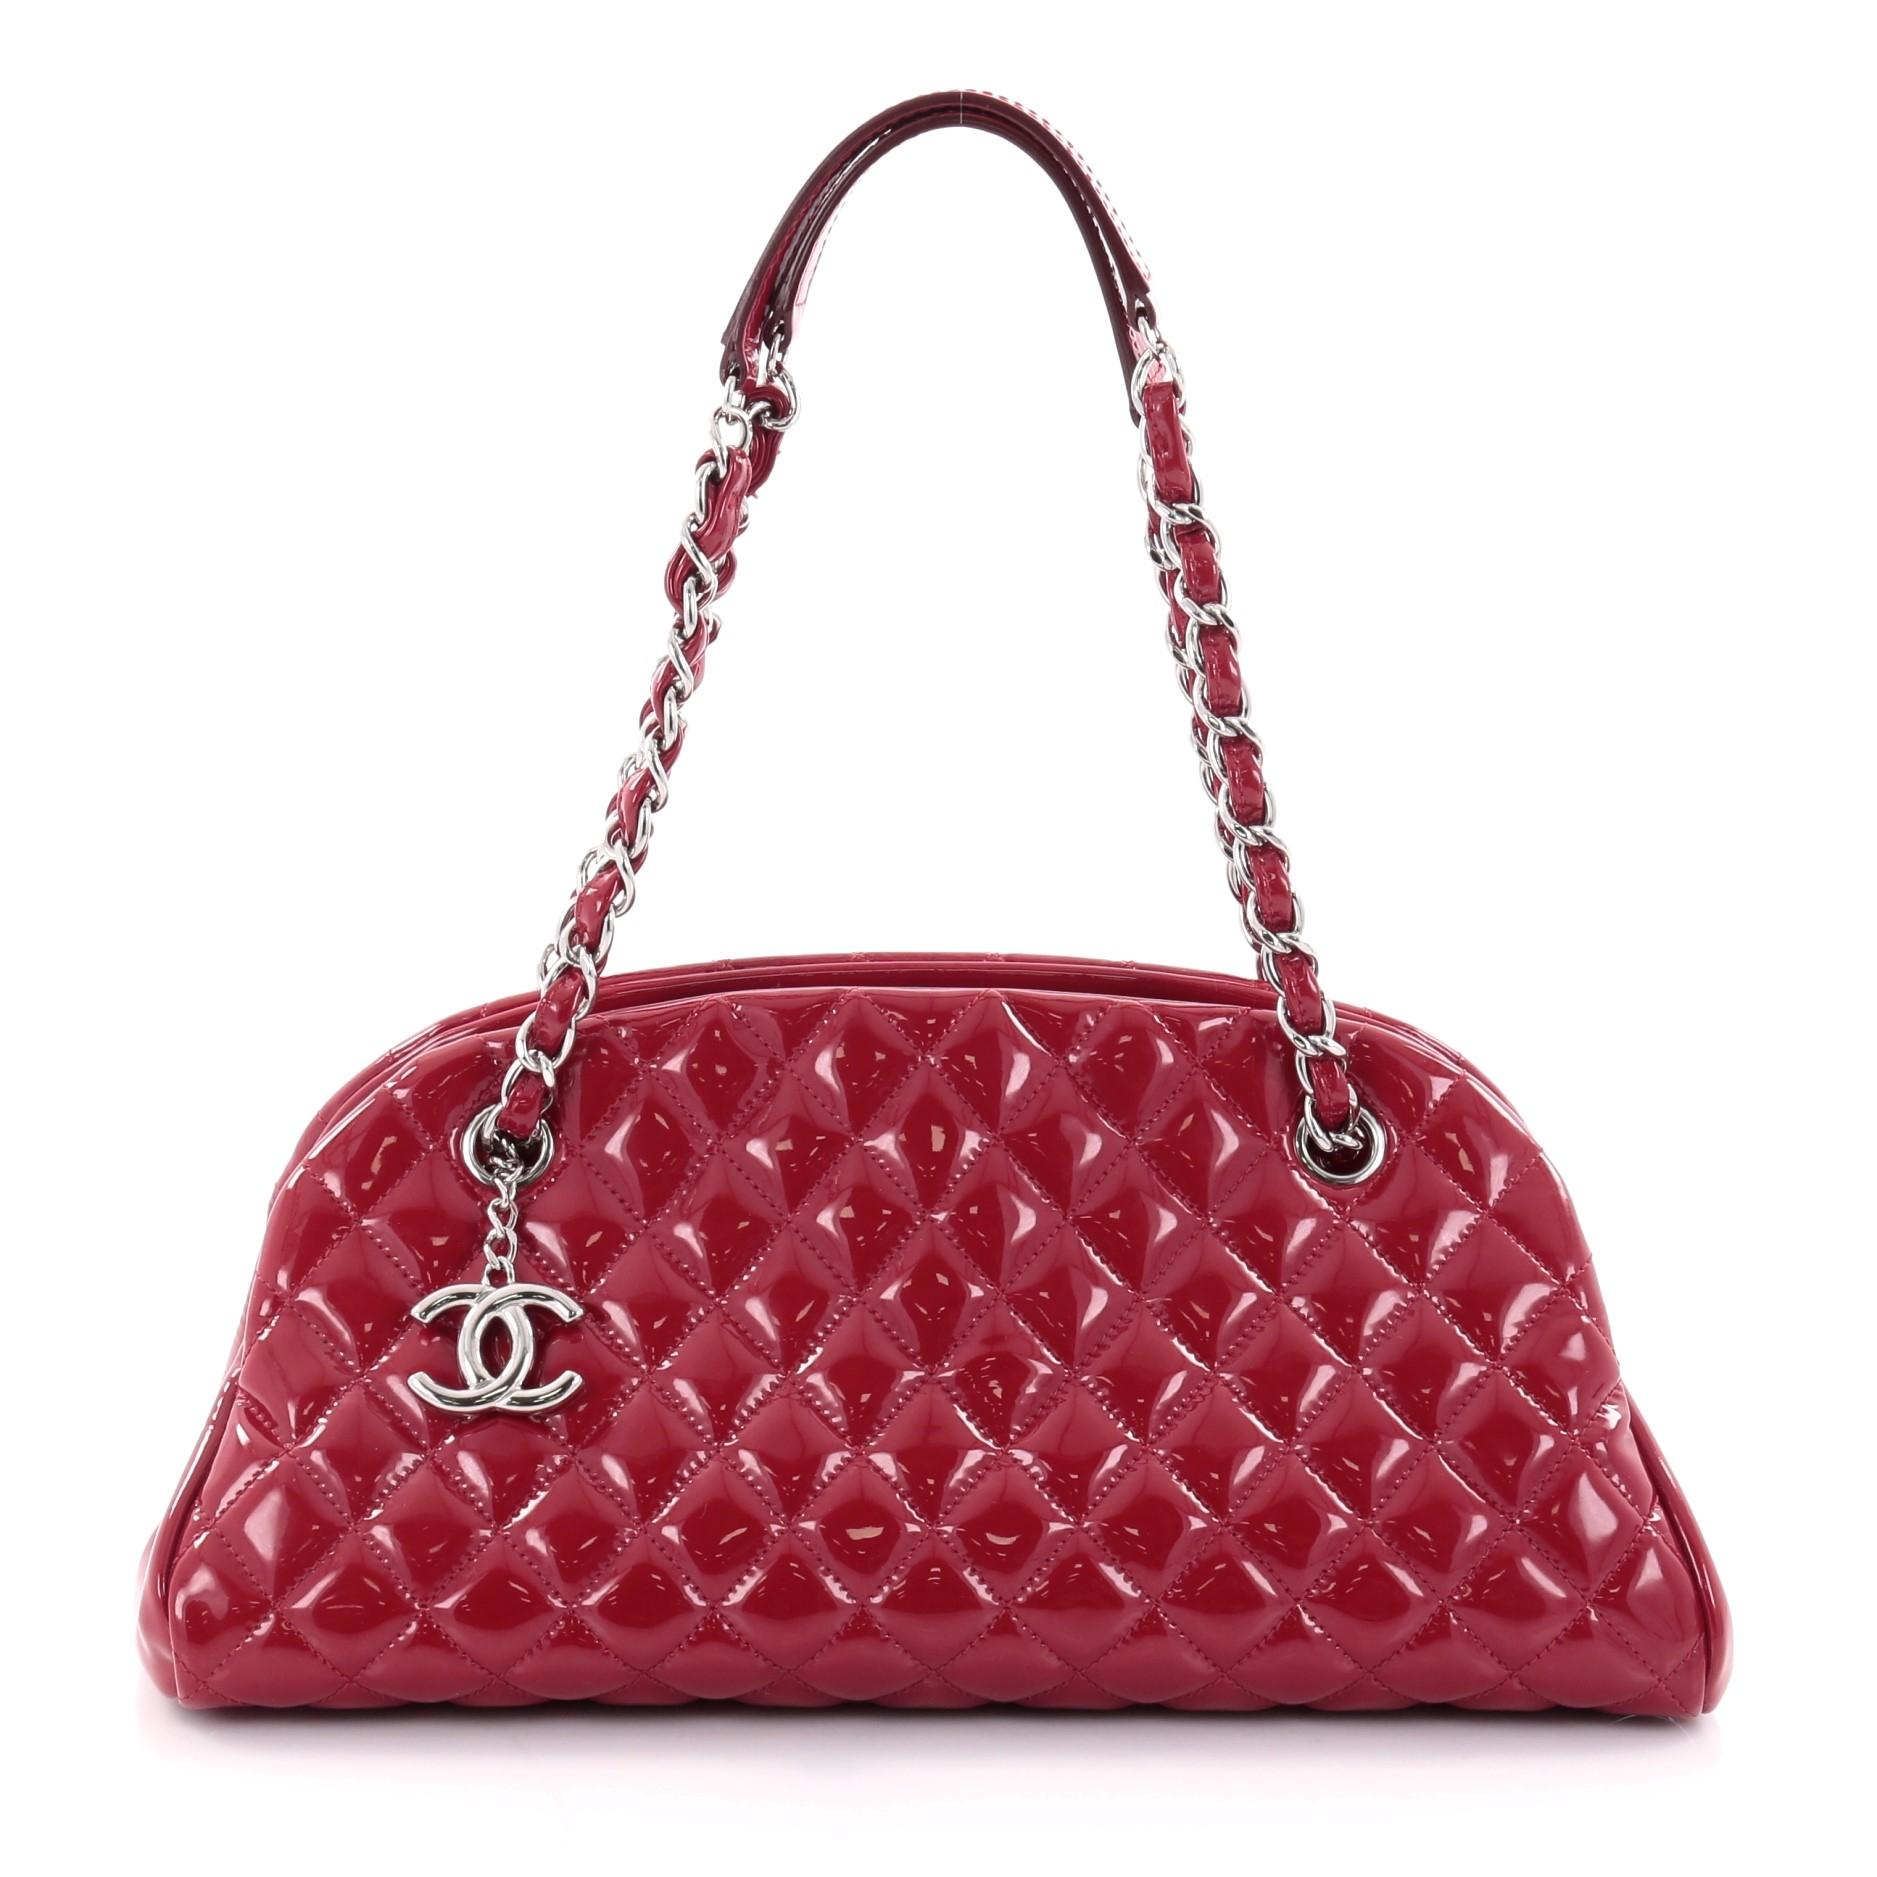 Chanel Mademoiselle Just Handbag Quilted Patent Medium Red